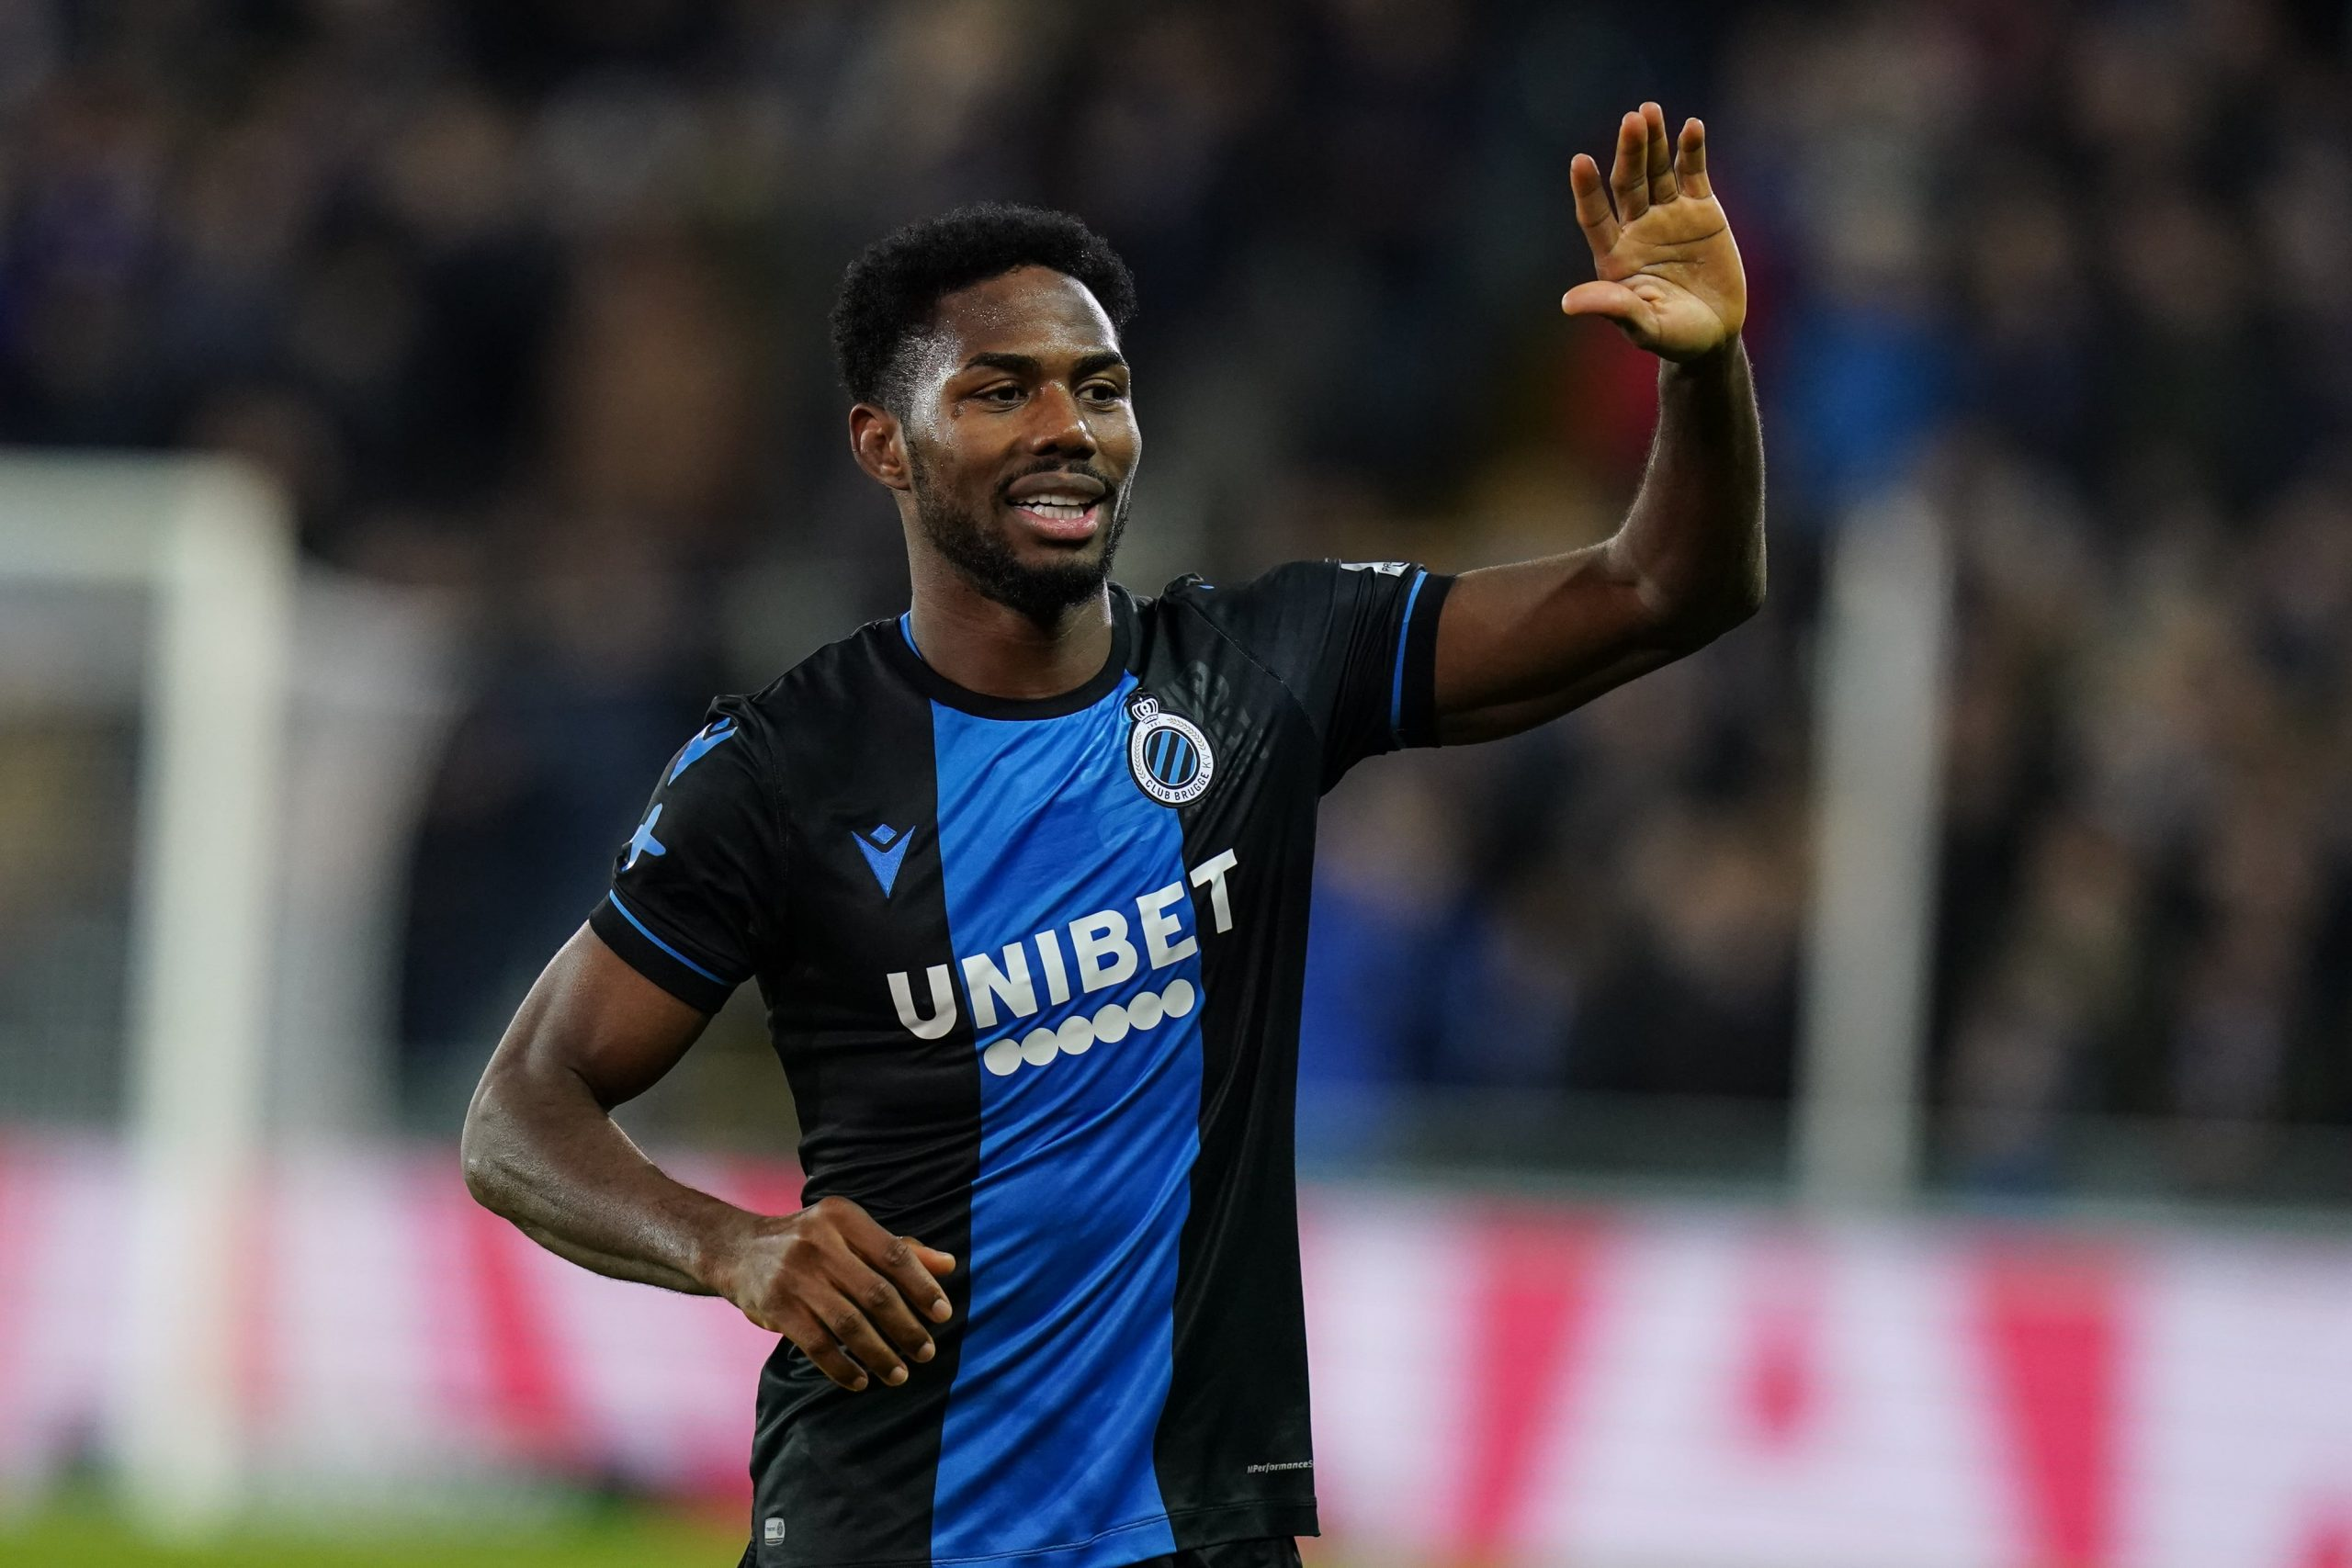 Dennis, Okereke Win Belgian League Title With Club Brugge